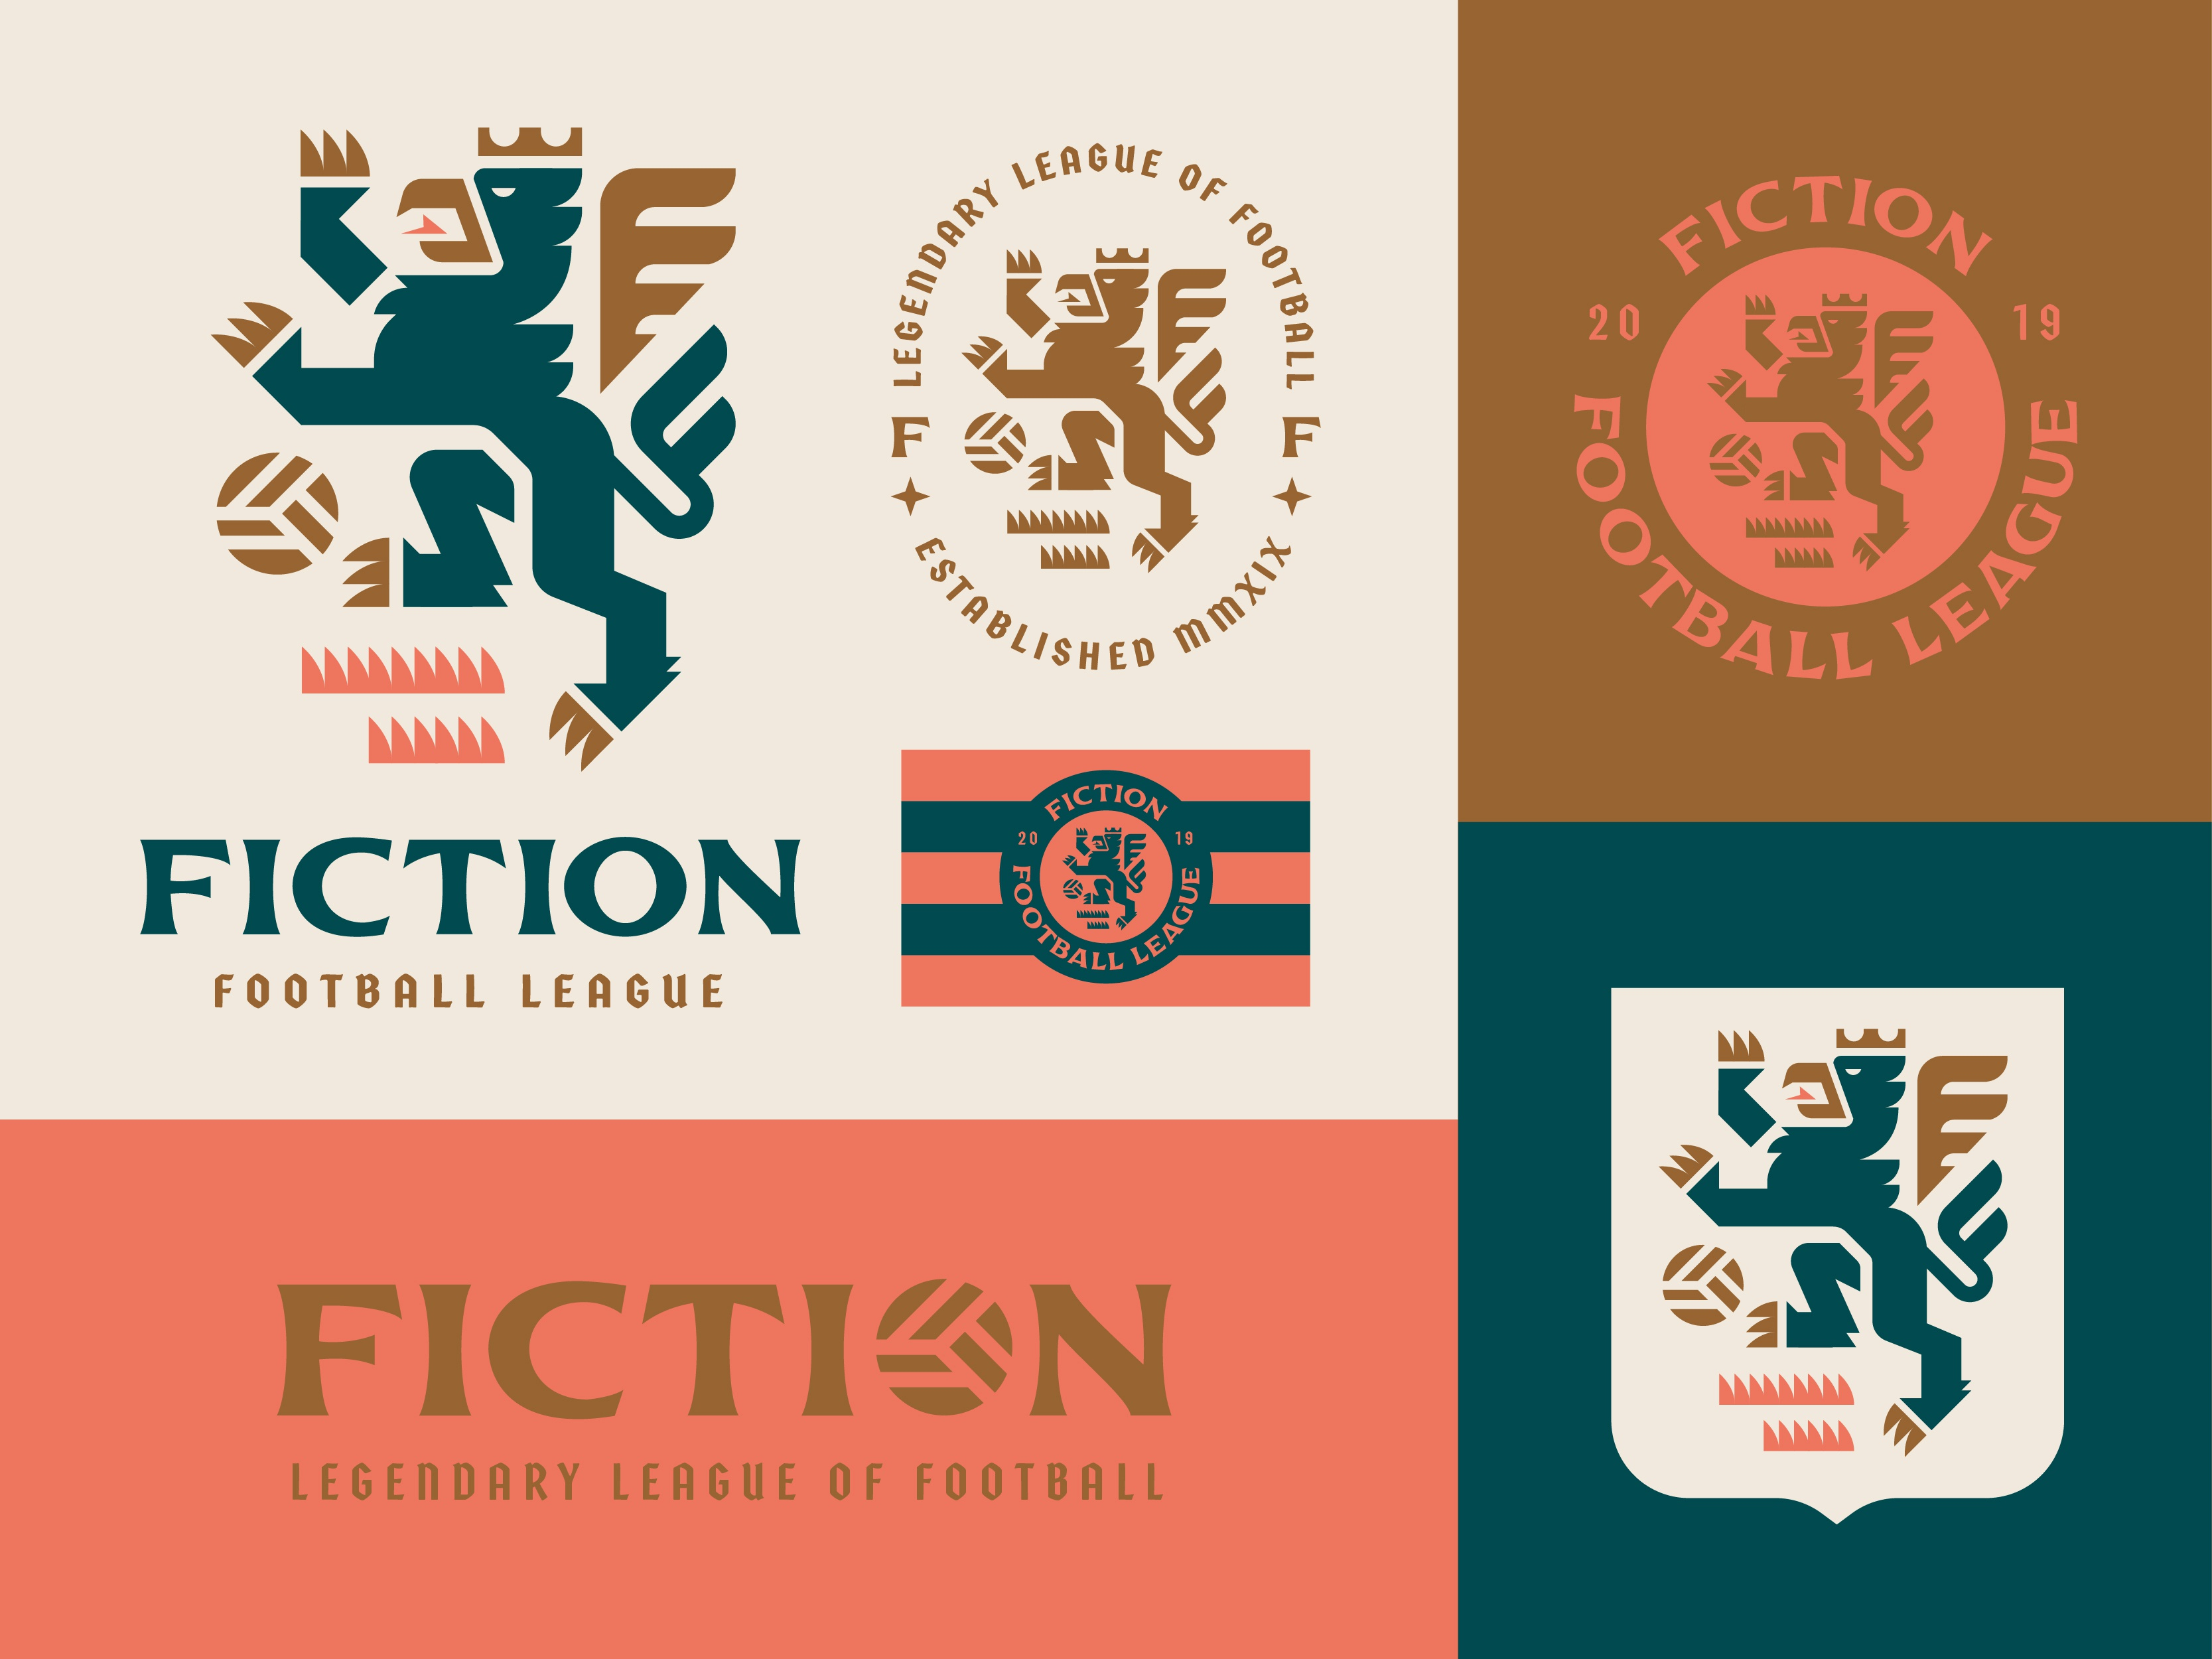 Fictionfootballleague 01